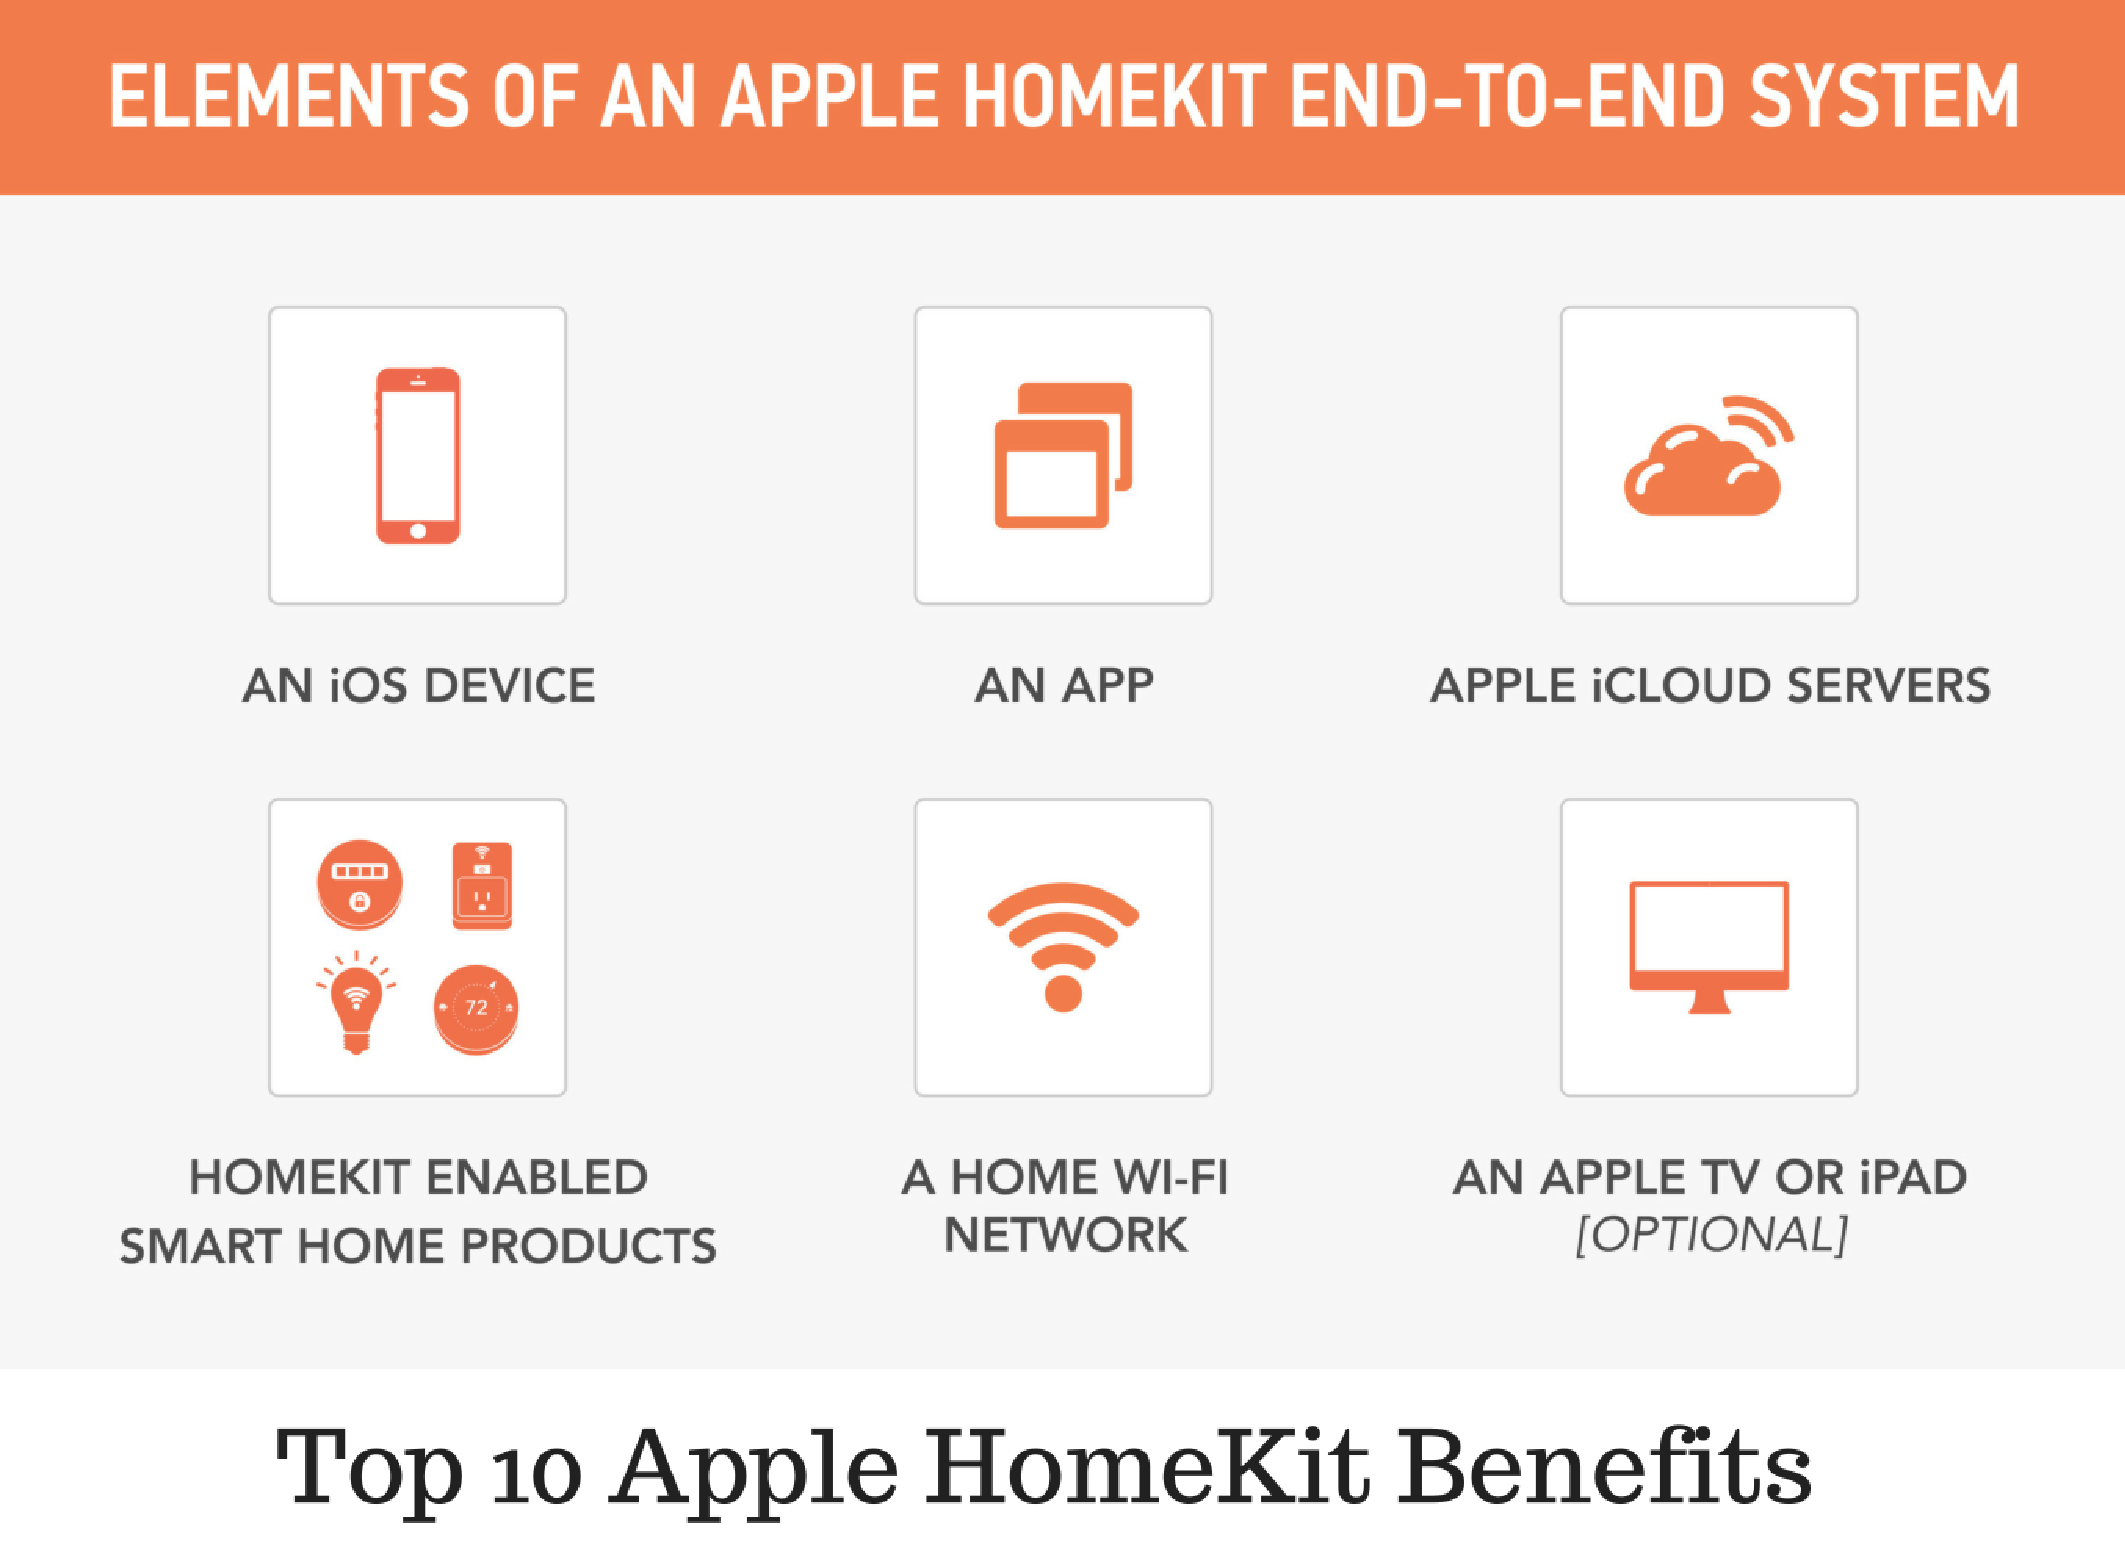 10 Apple HomeKit Benefits